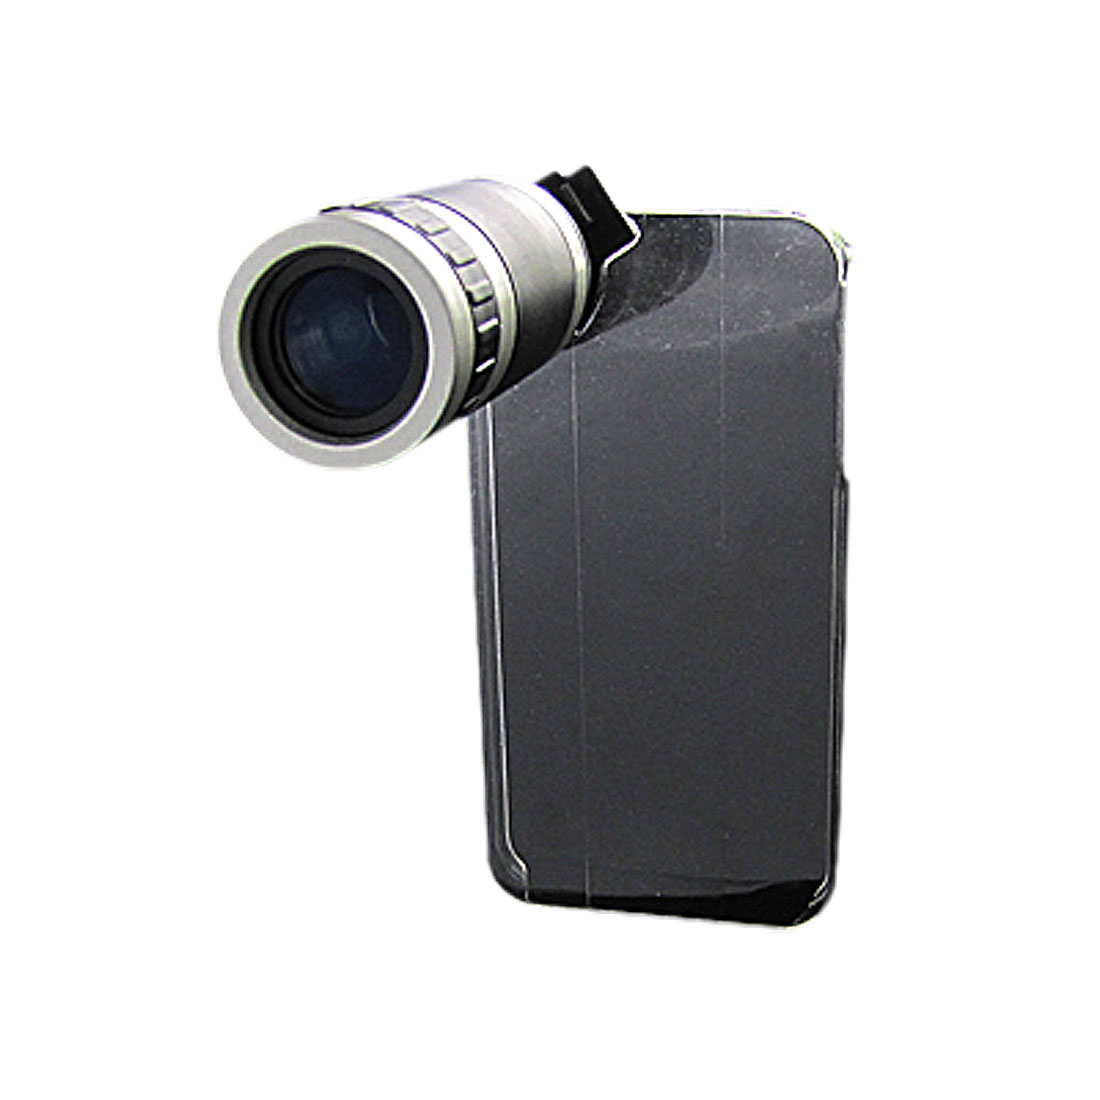 6X Optical Zoom Lens Telescope Camera w Crystal Back Case for iPhone 4G